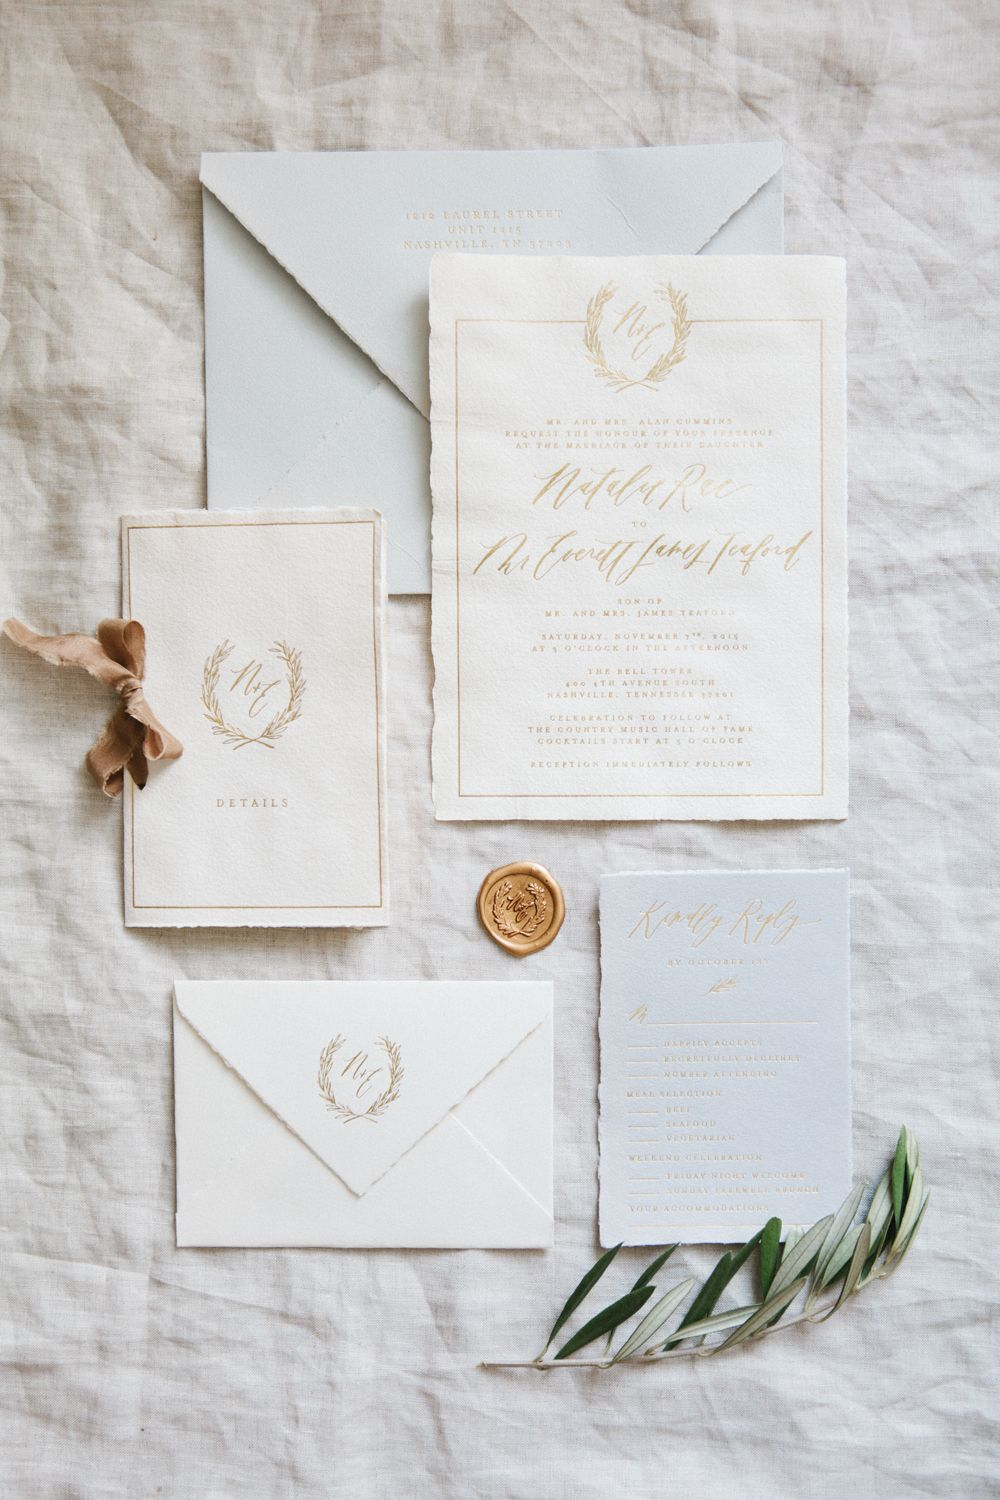 Handmade Paper Invitations Calligraphy And Design By Written Word Gold Foil Printing Gray Weddings Jessica Sloane